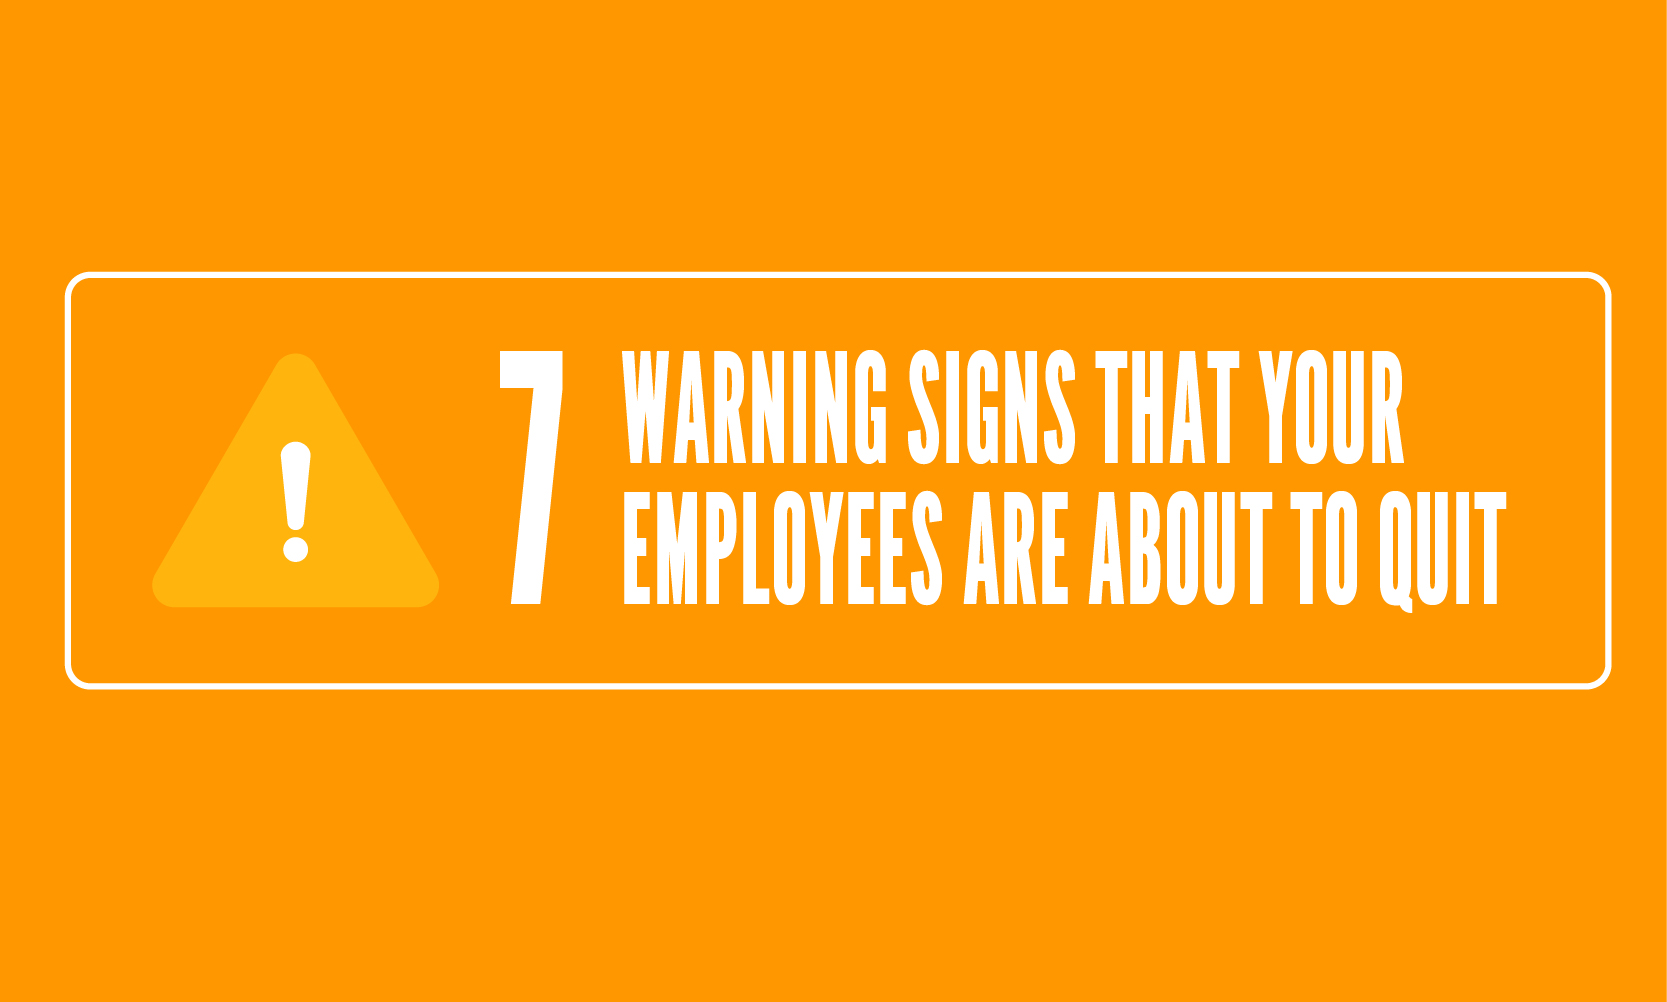 7 Warning Signs that Your Employees are About to Quit - When I Work